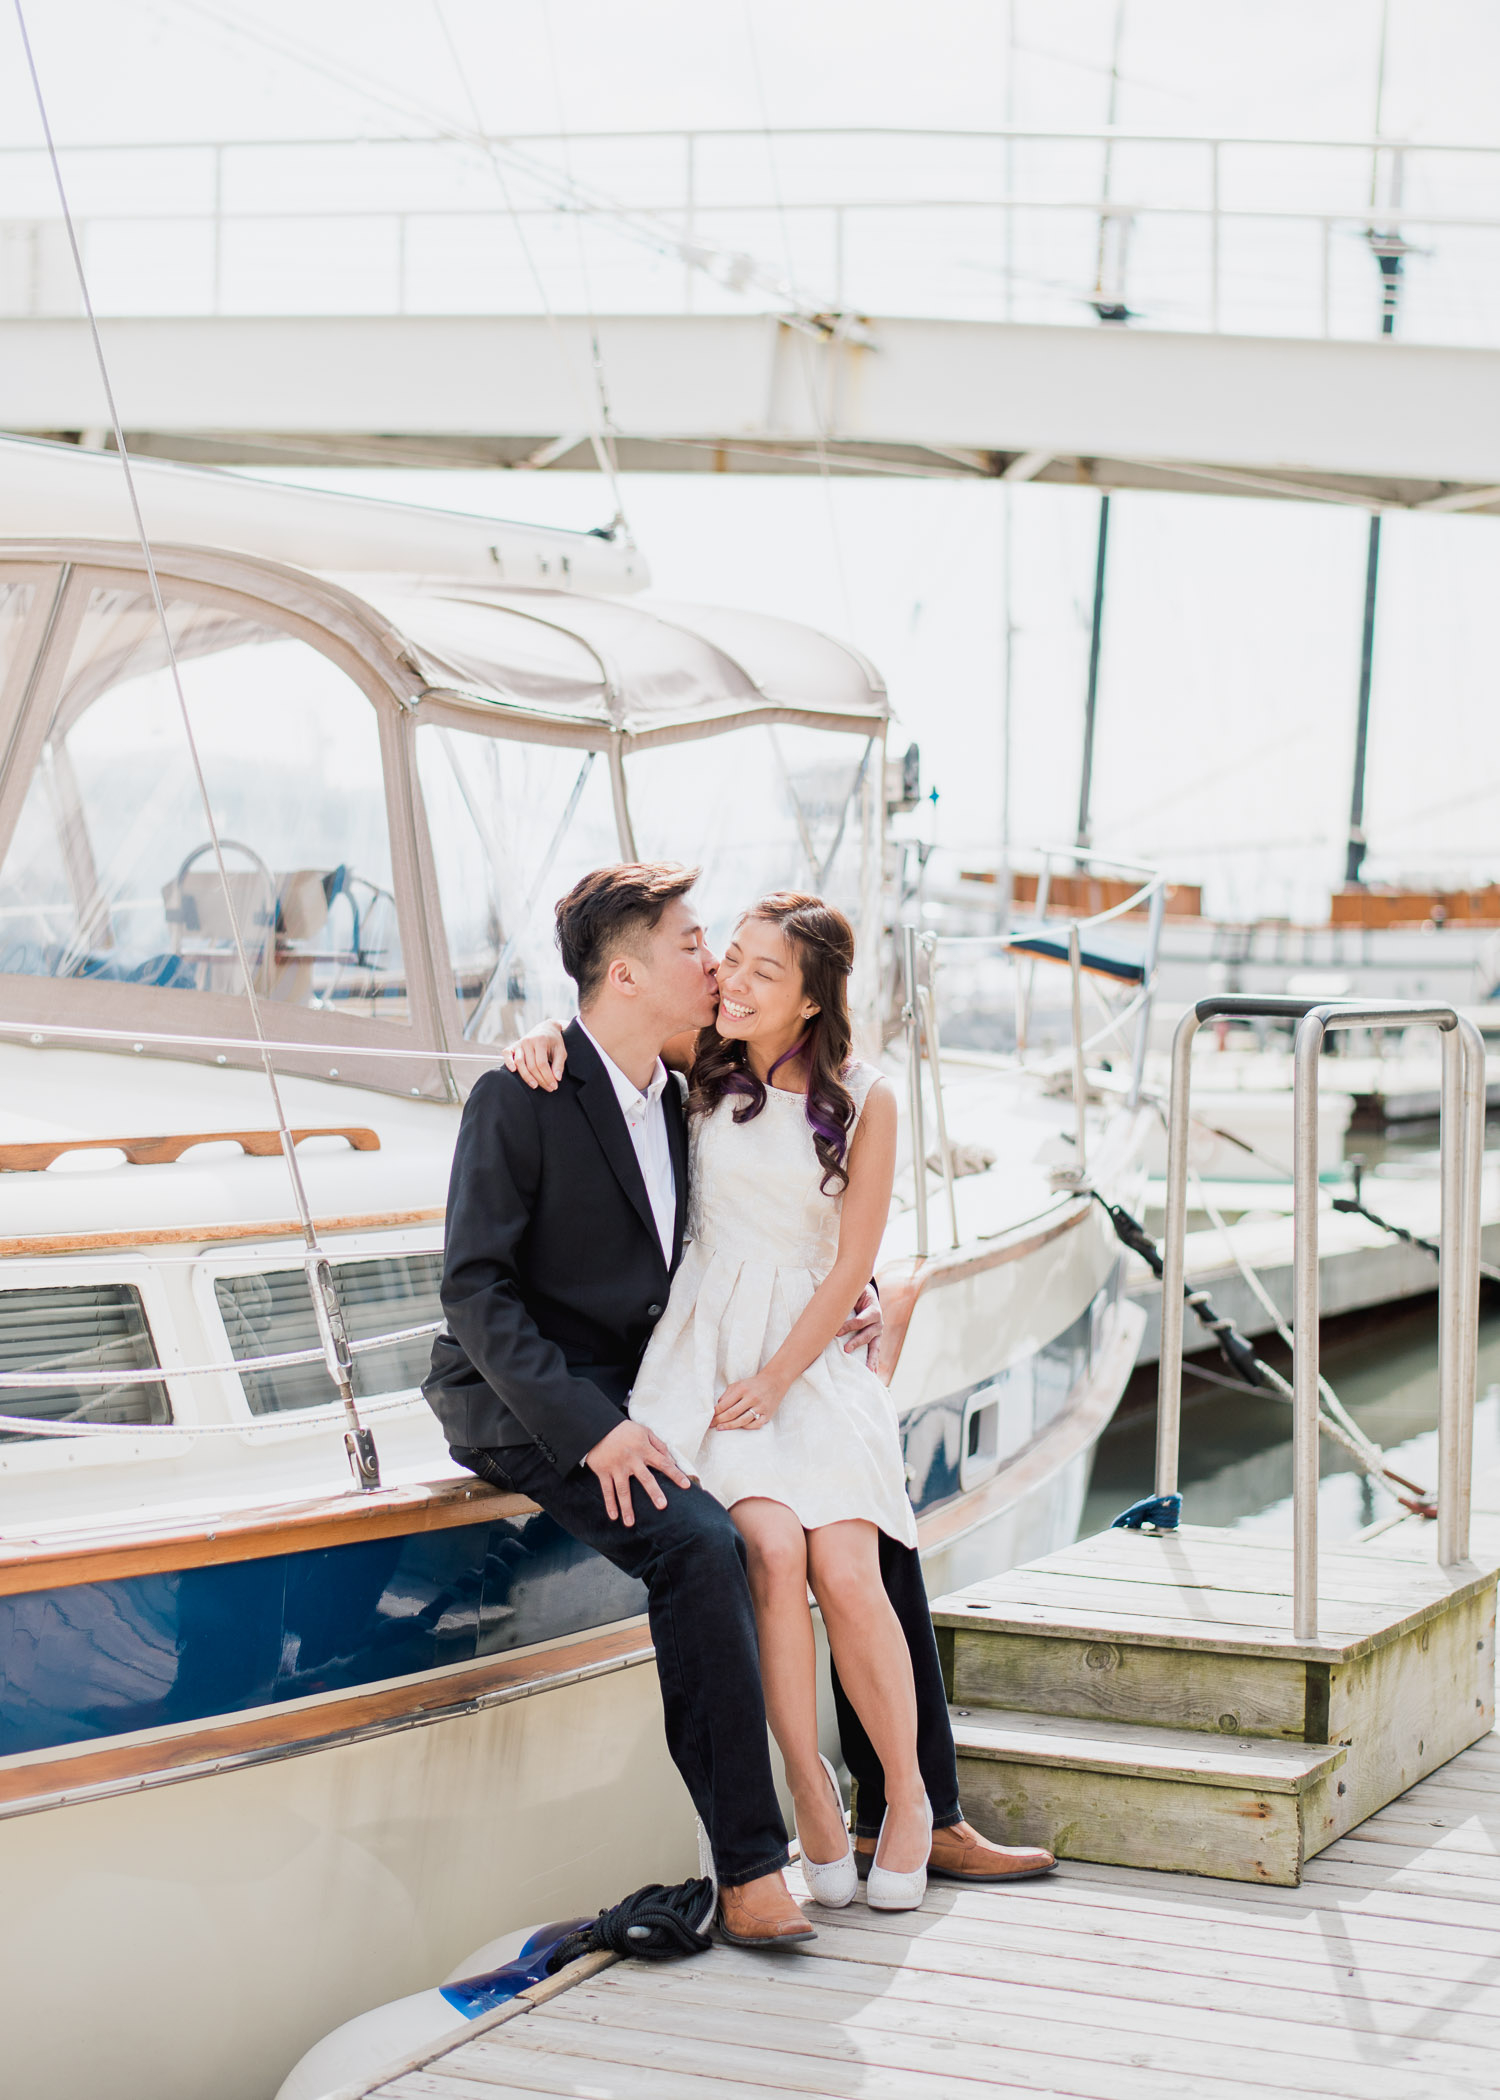 Couple sitting on sailboat sharing a kiss at Harbourfront Toronto